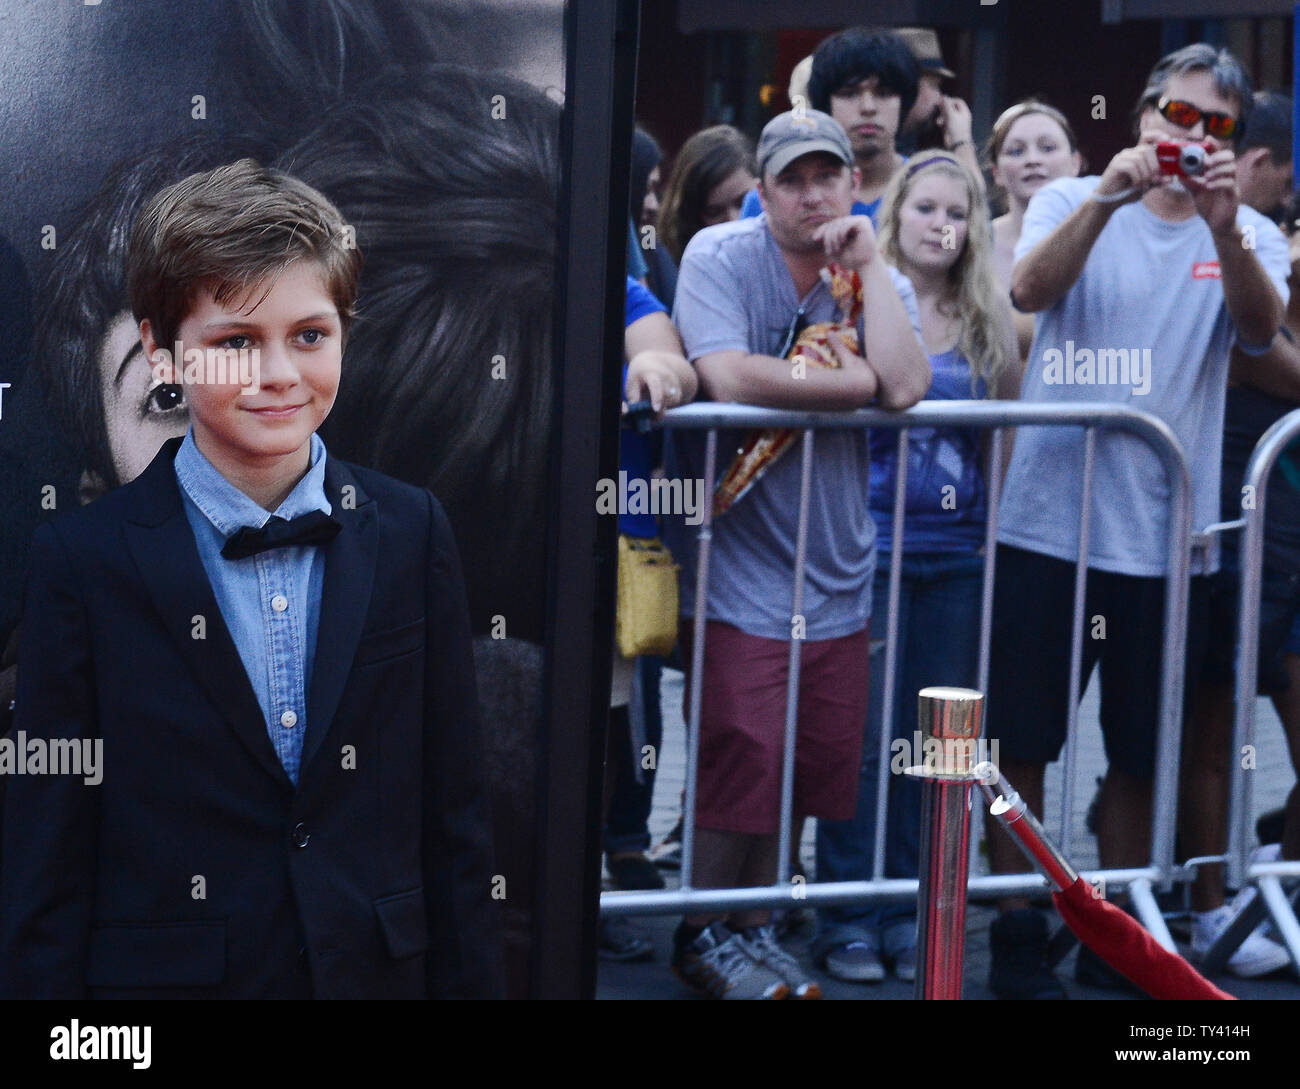 Cast Member Ty Simpkins Attends The Premiere Of The Motion Picture Horror Thriller Insidious Chapter 2 At Universal Citywalk In Universal City On September 10 2013 The Haunted Lambert Family Seeks To